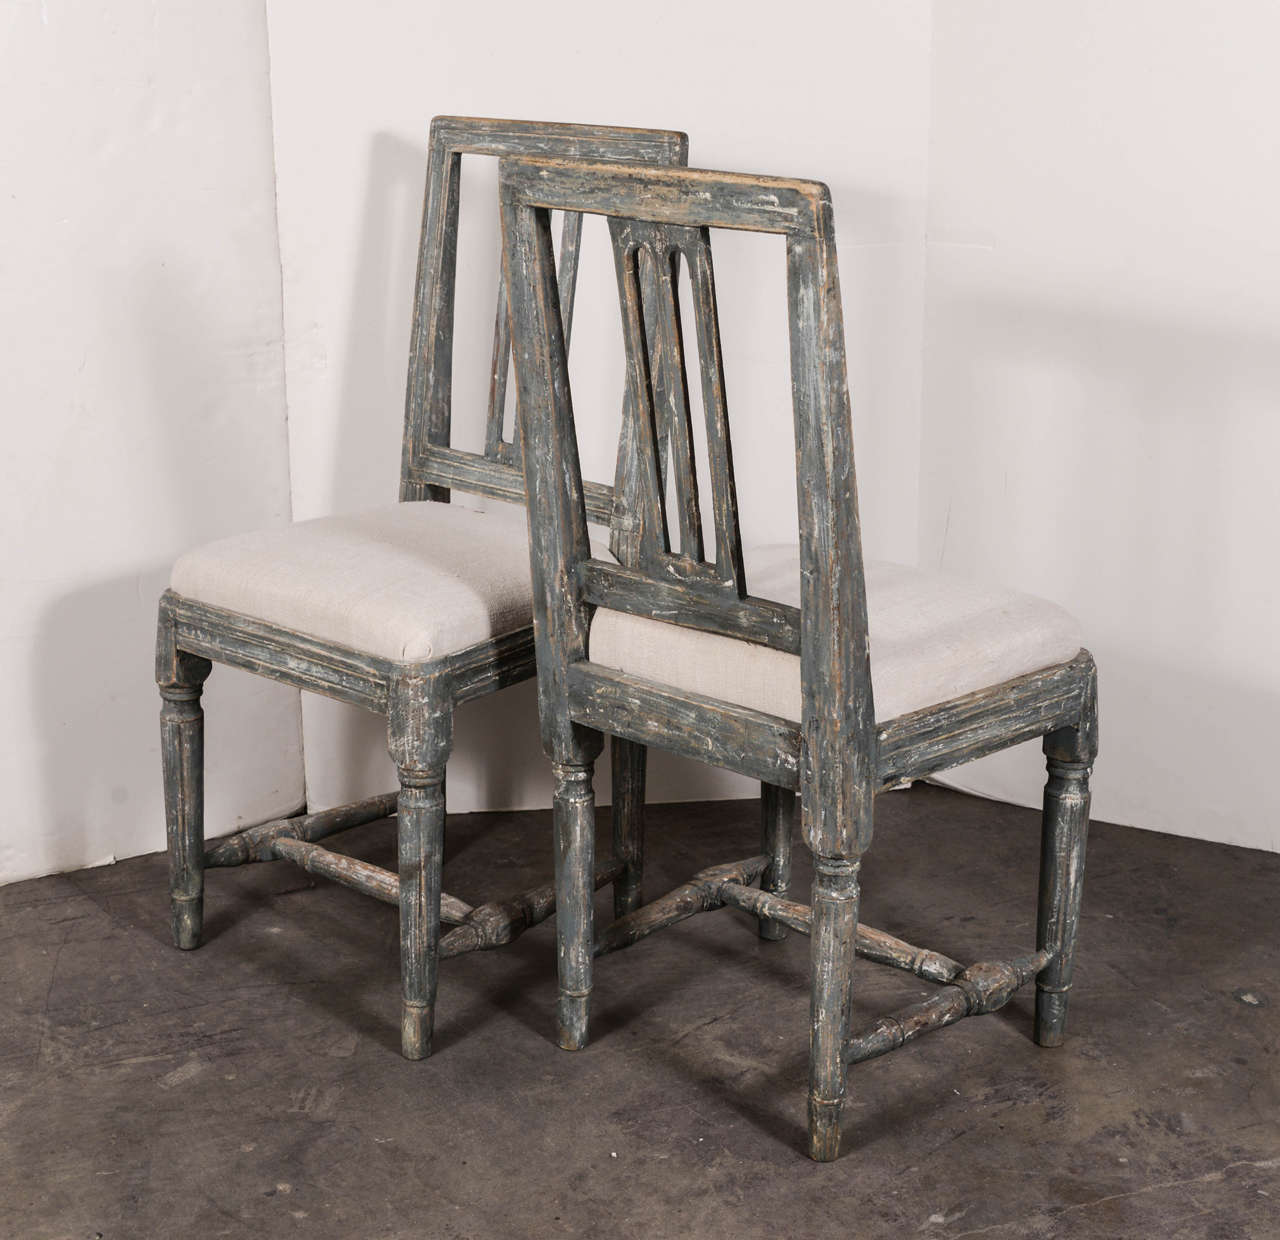 18th Century Swedish Gustavian Blue Painted Slat Back Dining Chairs from circa 1790 For Sale